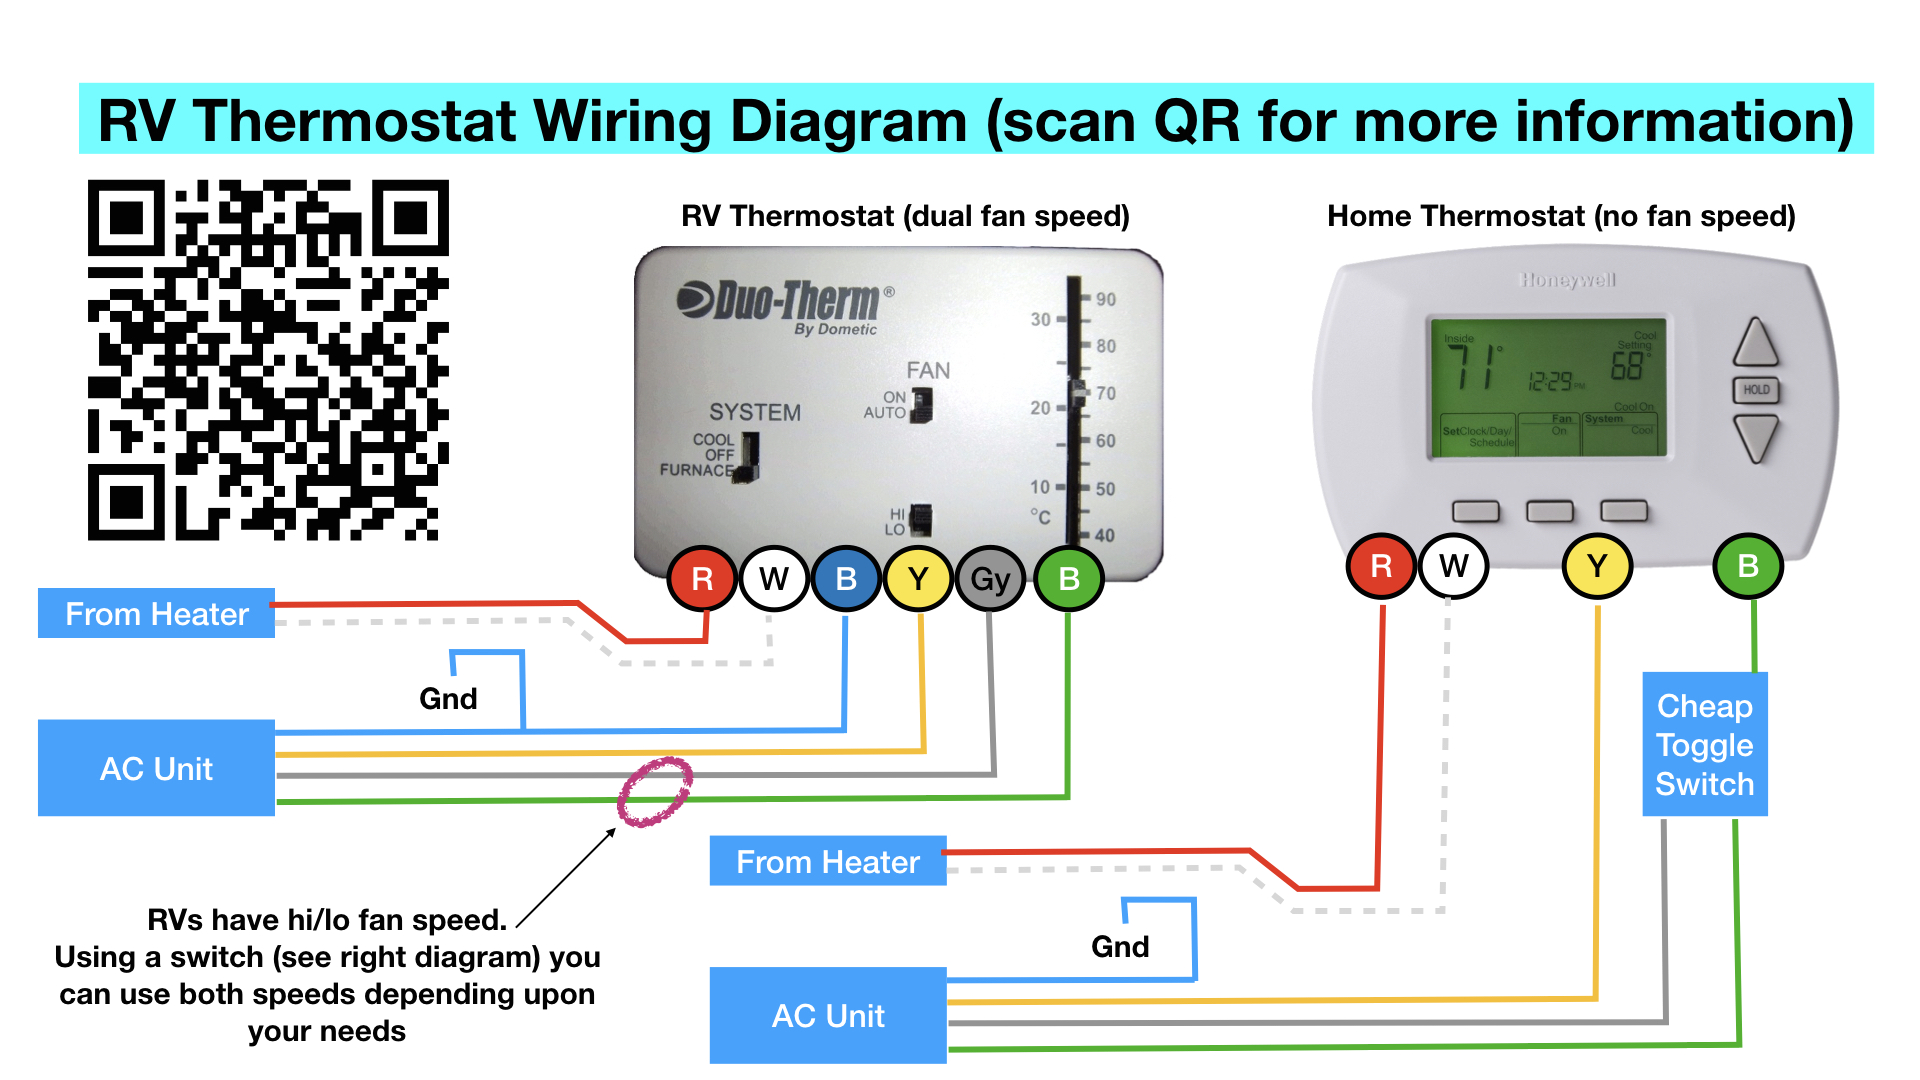 rv thermostat the big thermostat info page 100 free rh rv52 com rv comfort zc thermostat rv thermostat wiring diagram